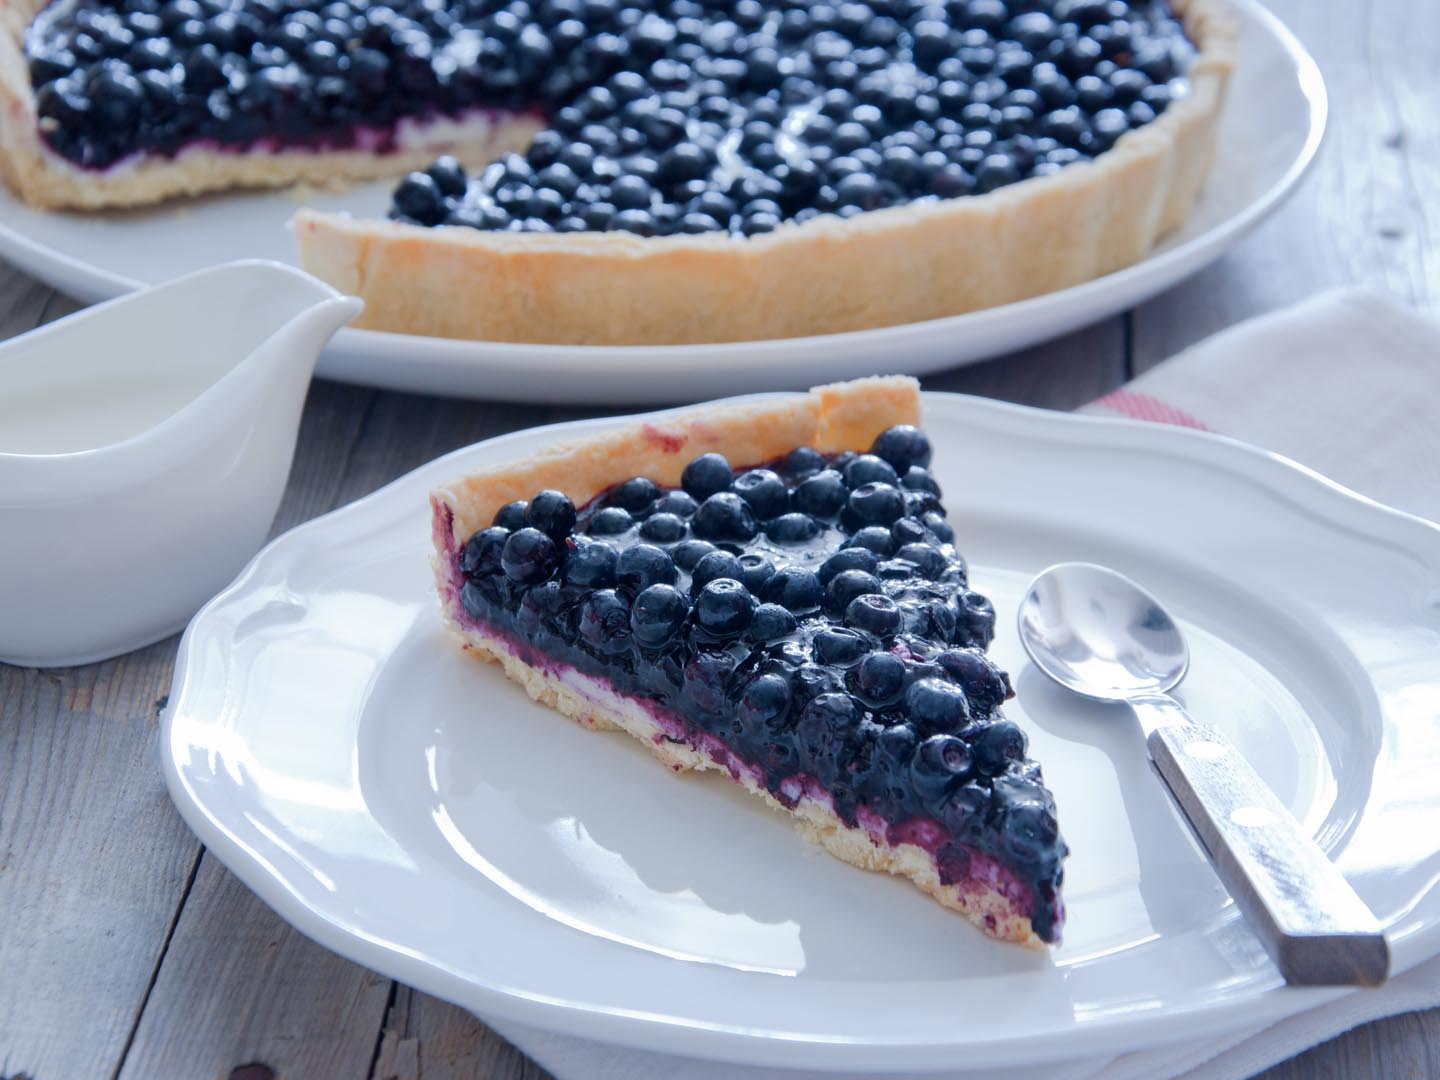 Blueberry Cake Calories